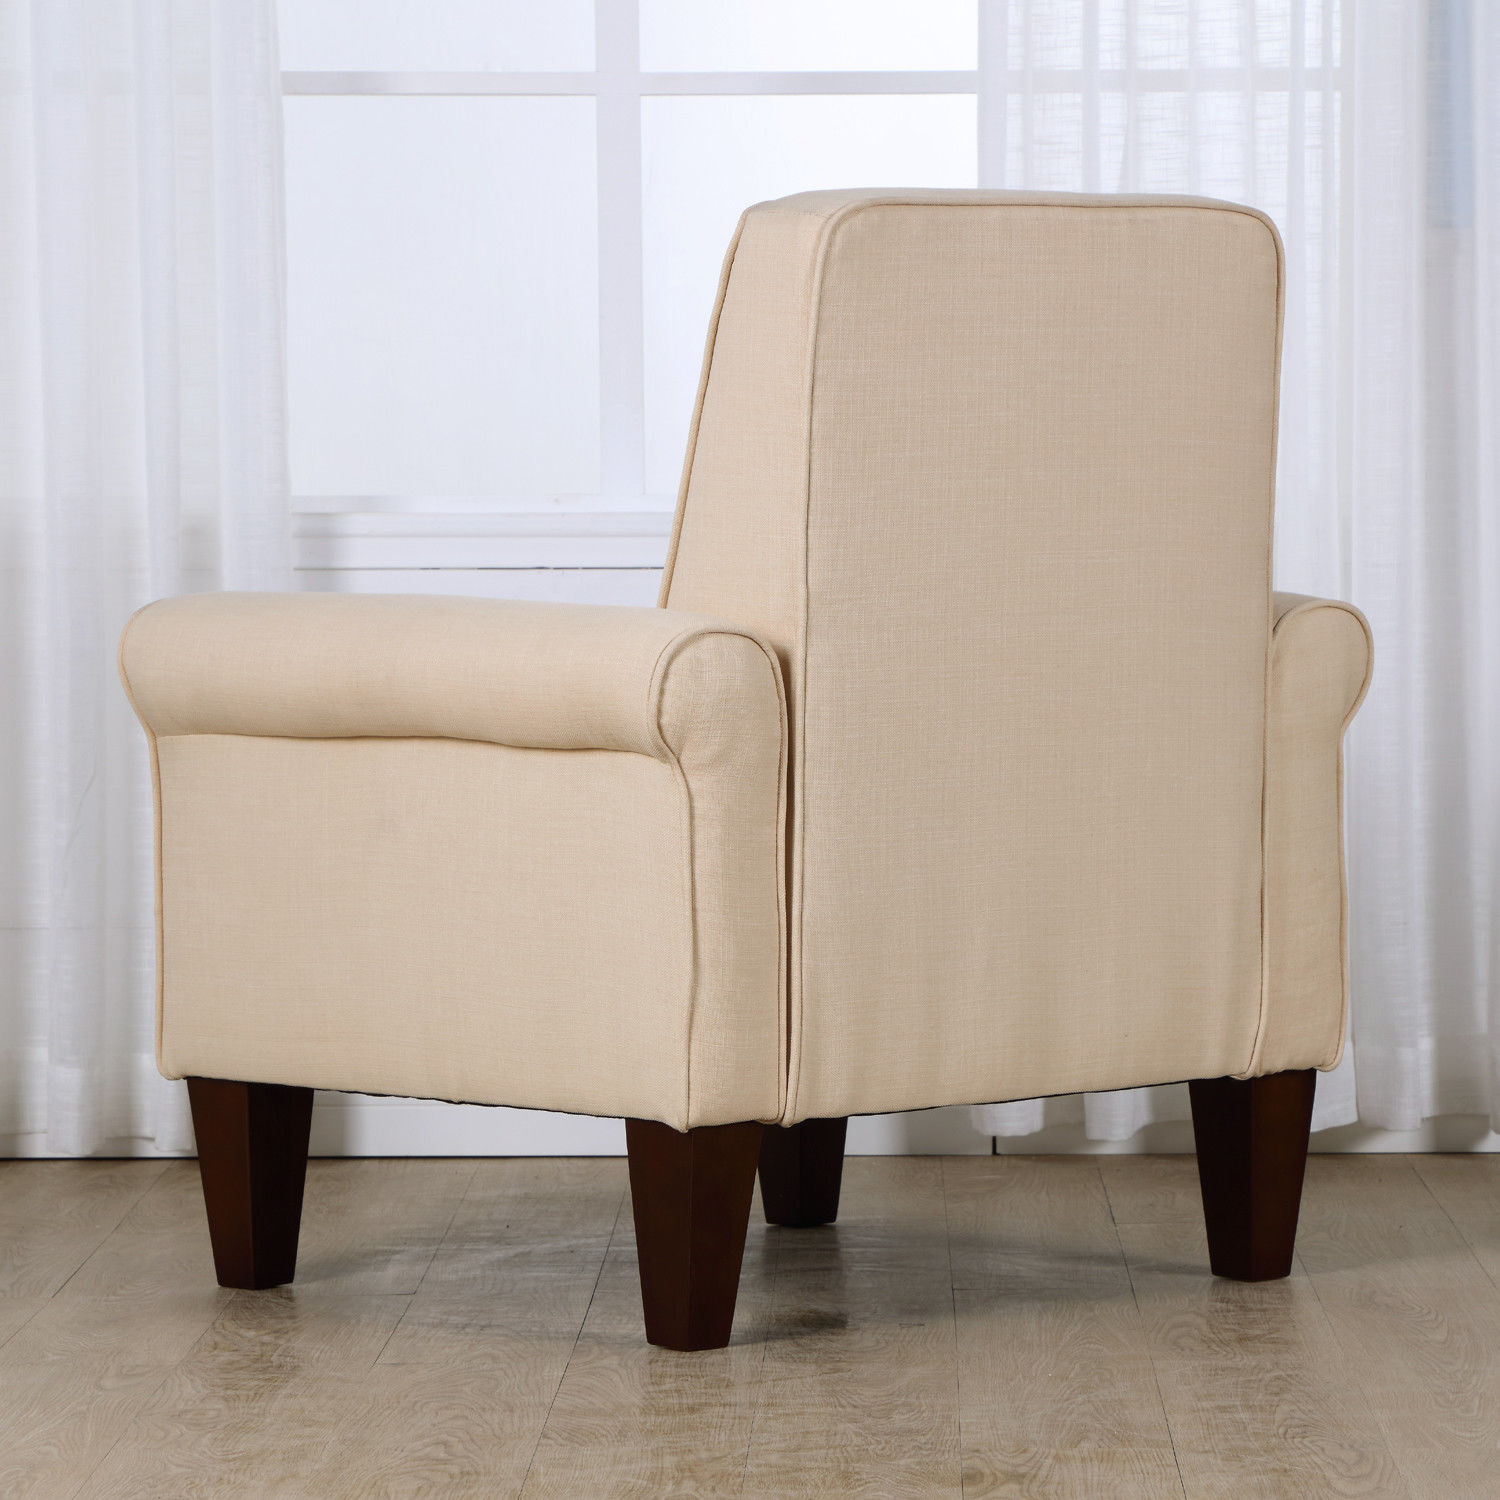 Upholstered Club Chair Accent Tufted Back Linen Upholstered Club Chair Armchair